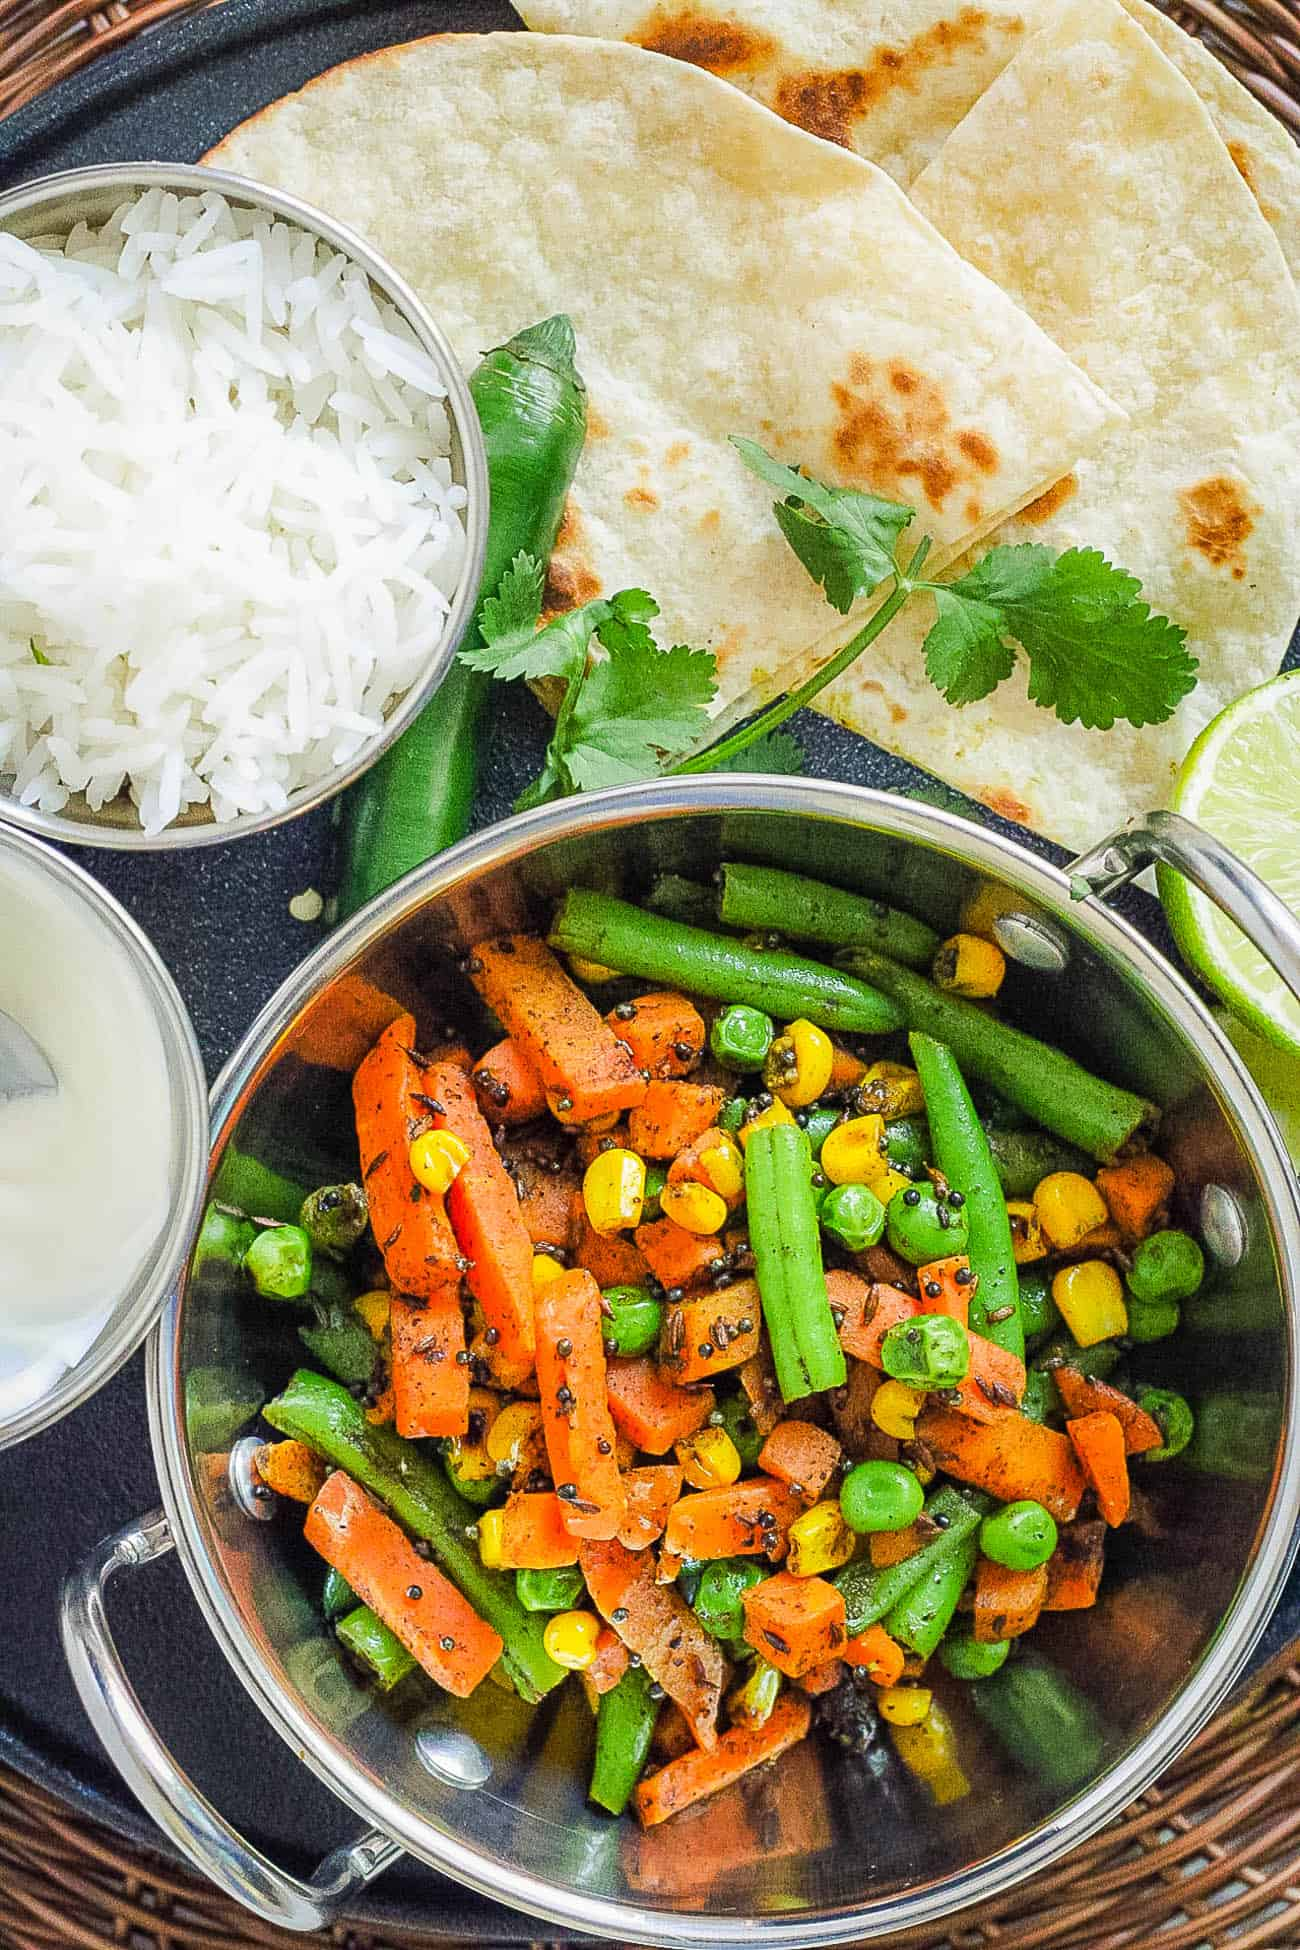 indian vegetables served in a stainless steel pot with naan and rice on the side